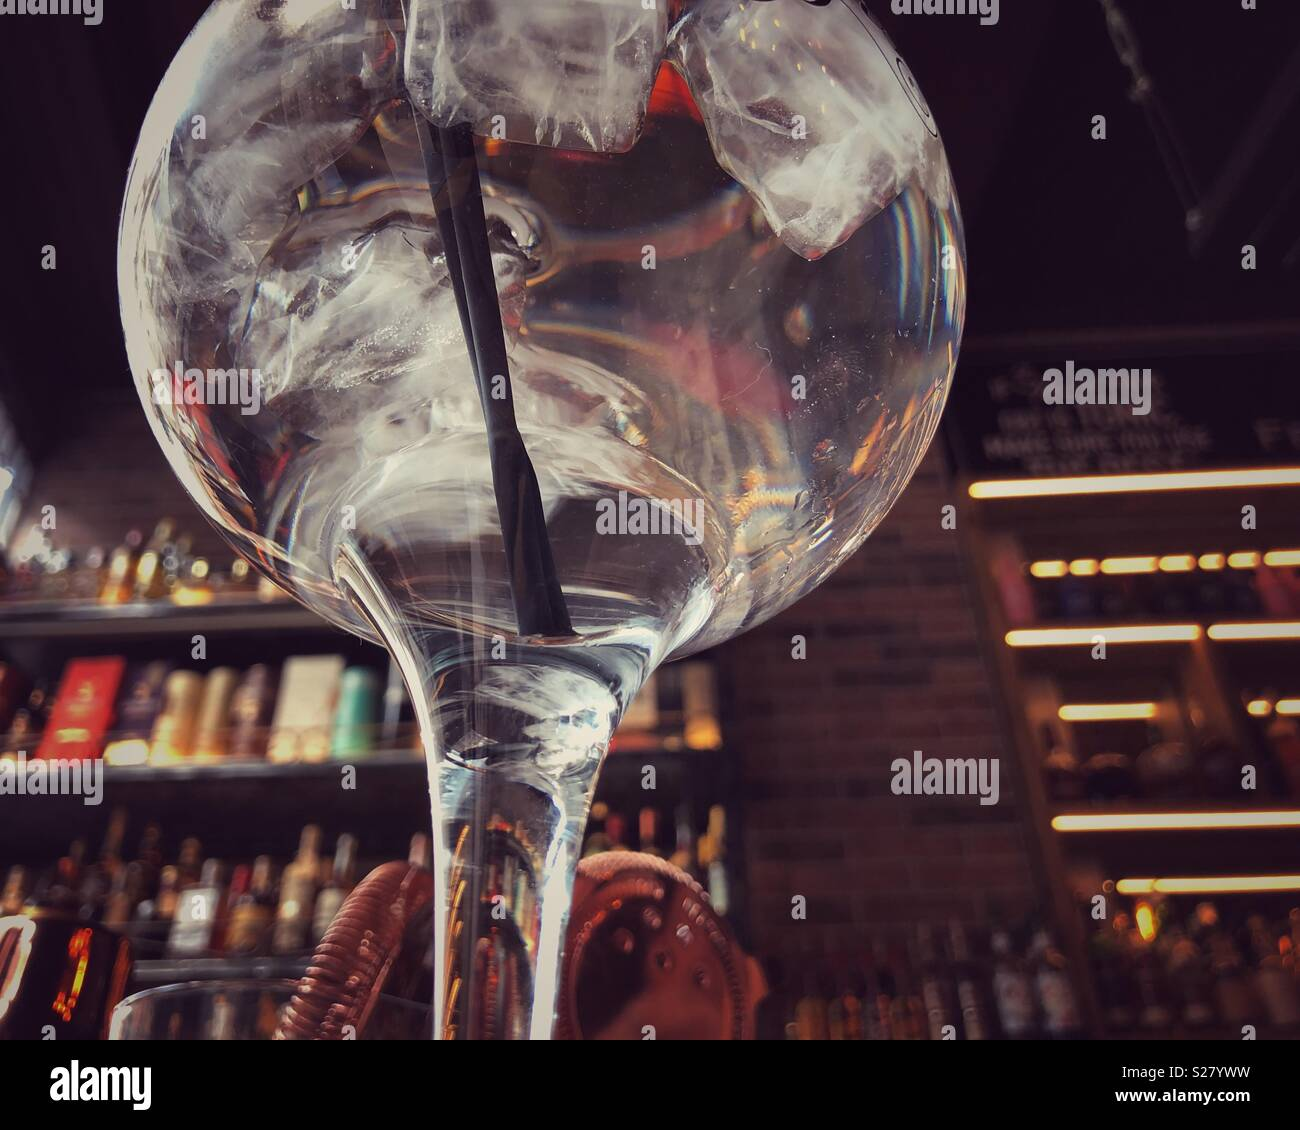 View from bottom, of a gin glass on a bar table. - Stock Image